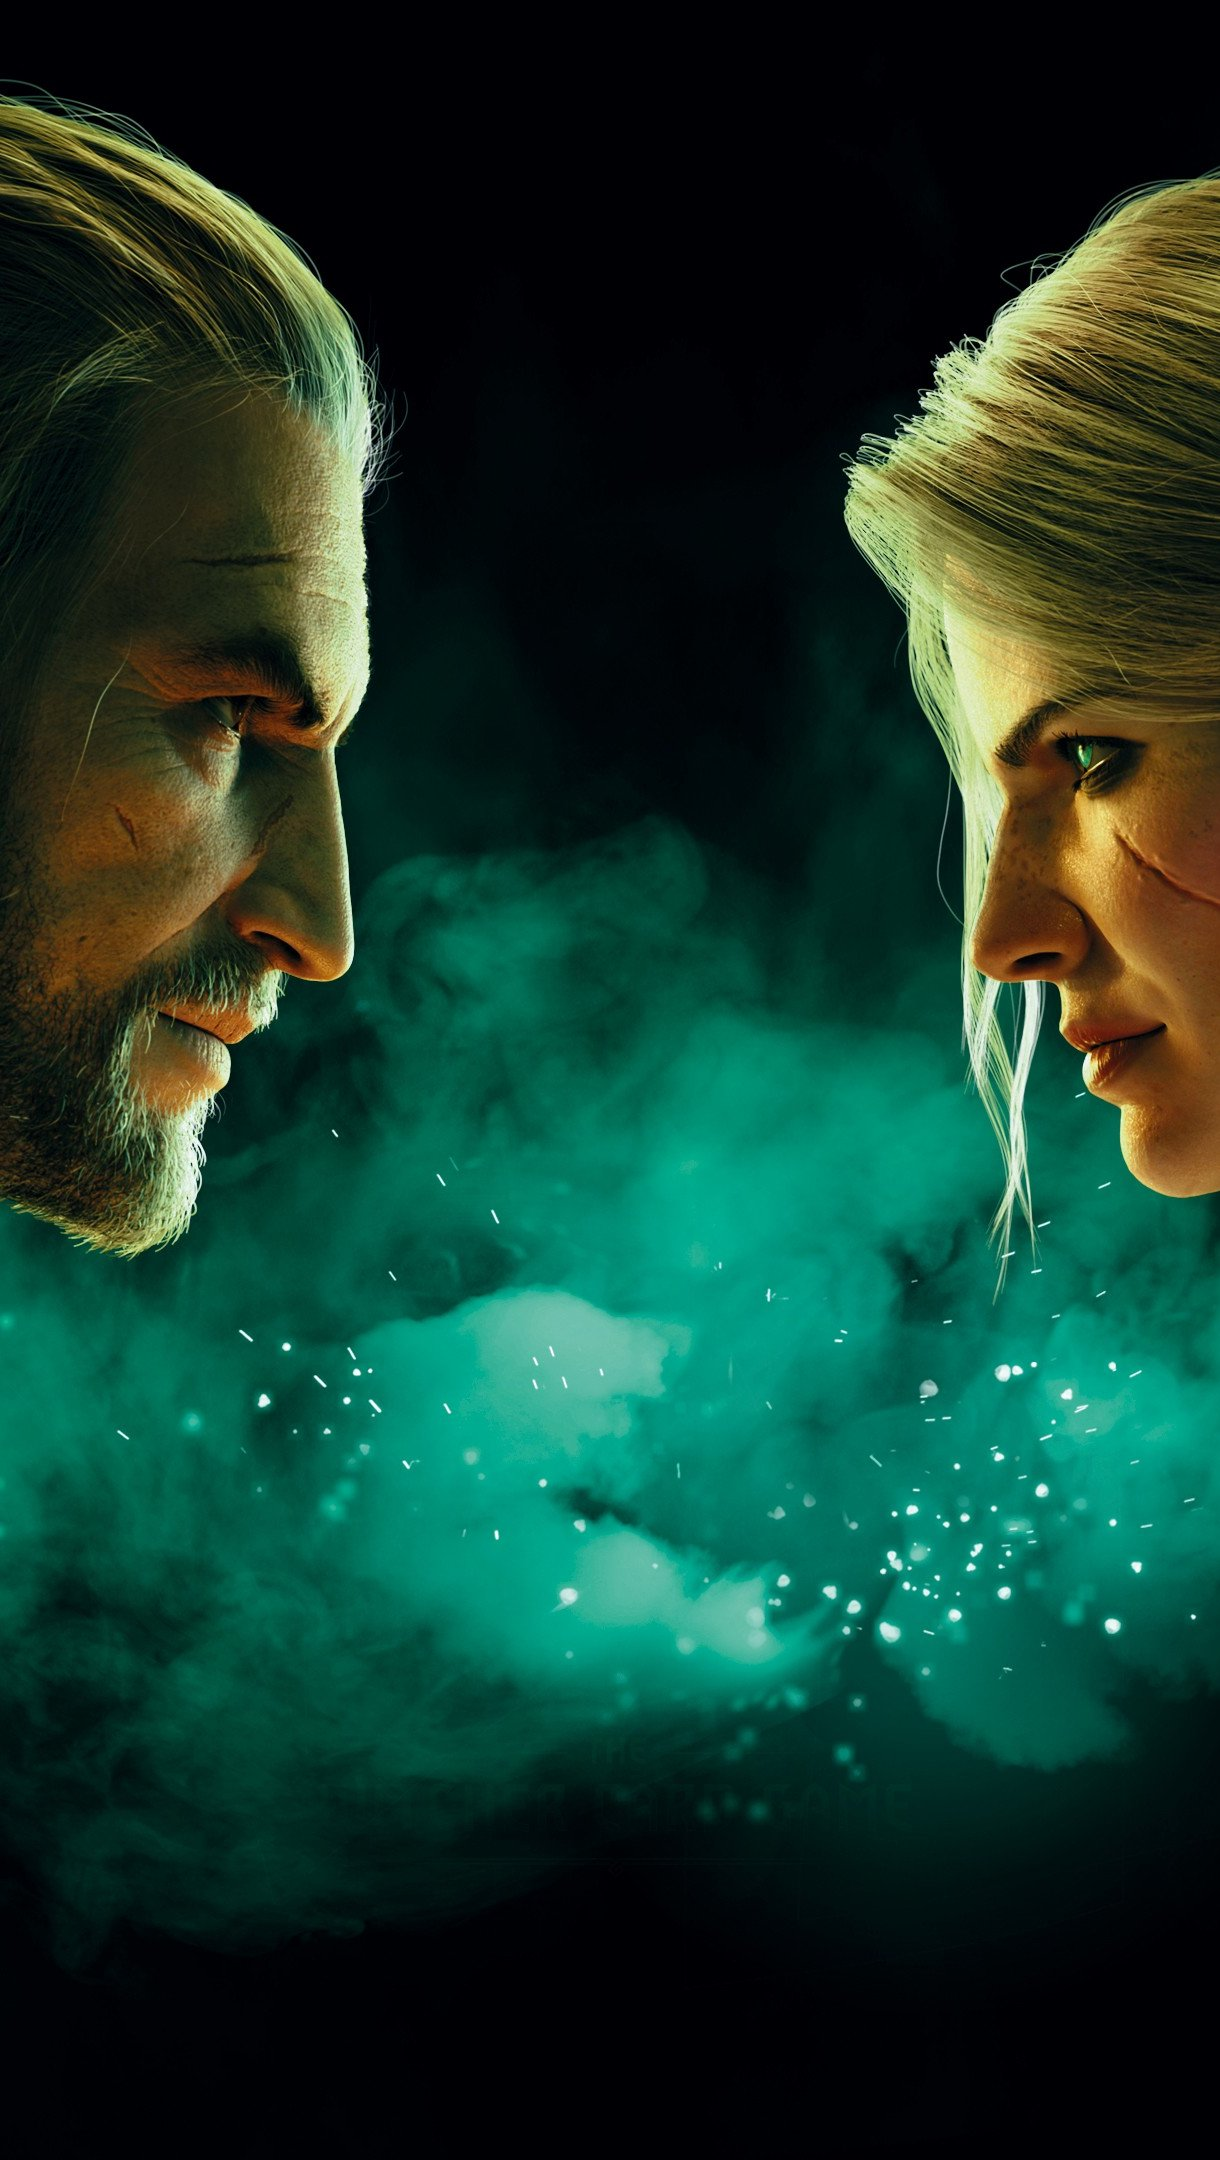 Wallpaper Ciri and Geralt from Gwent: The Witcher Card Game Vertical